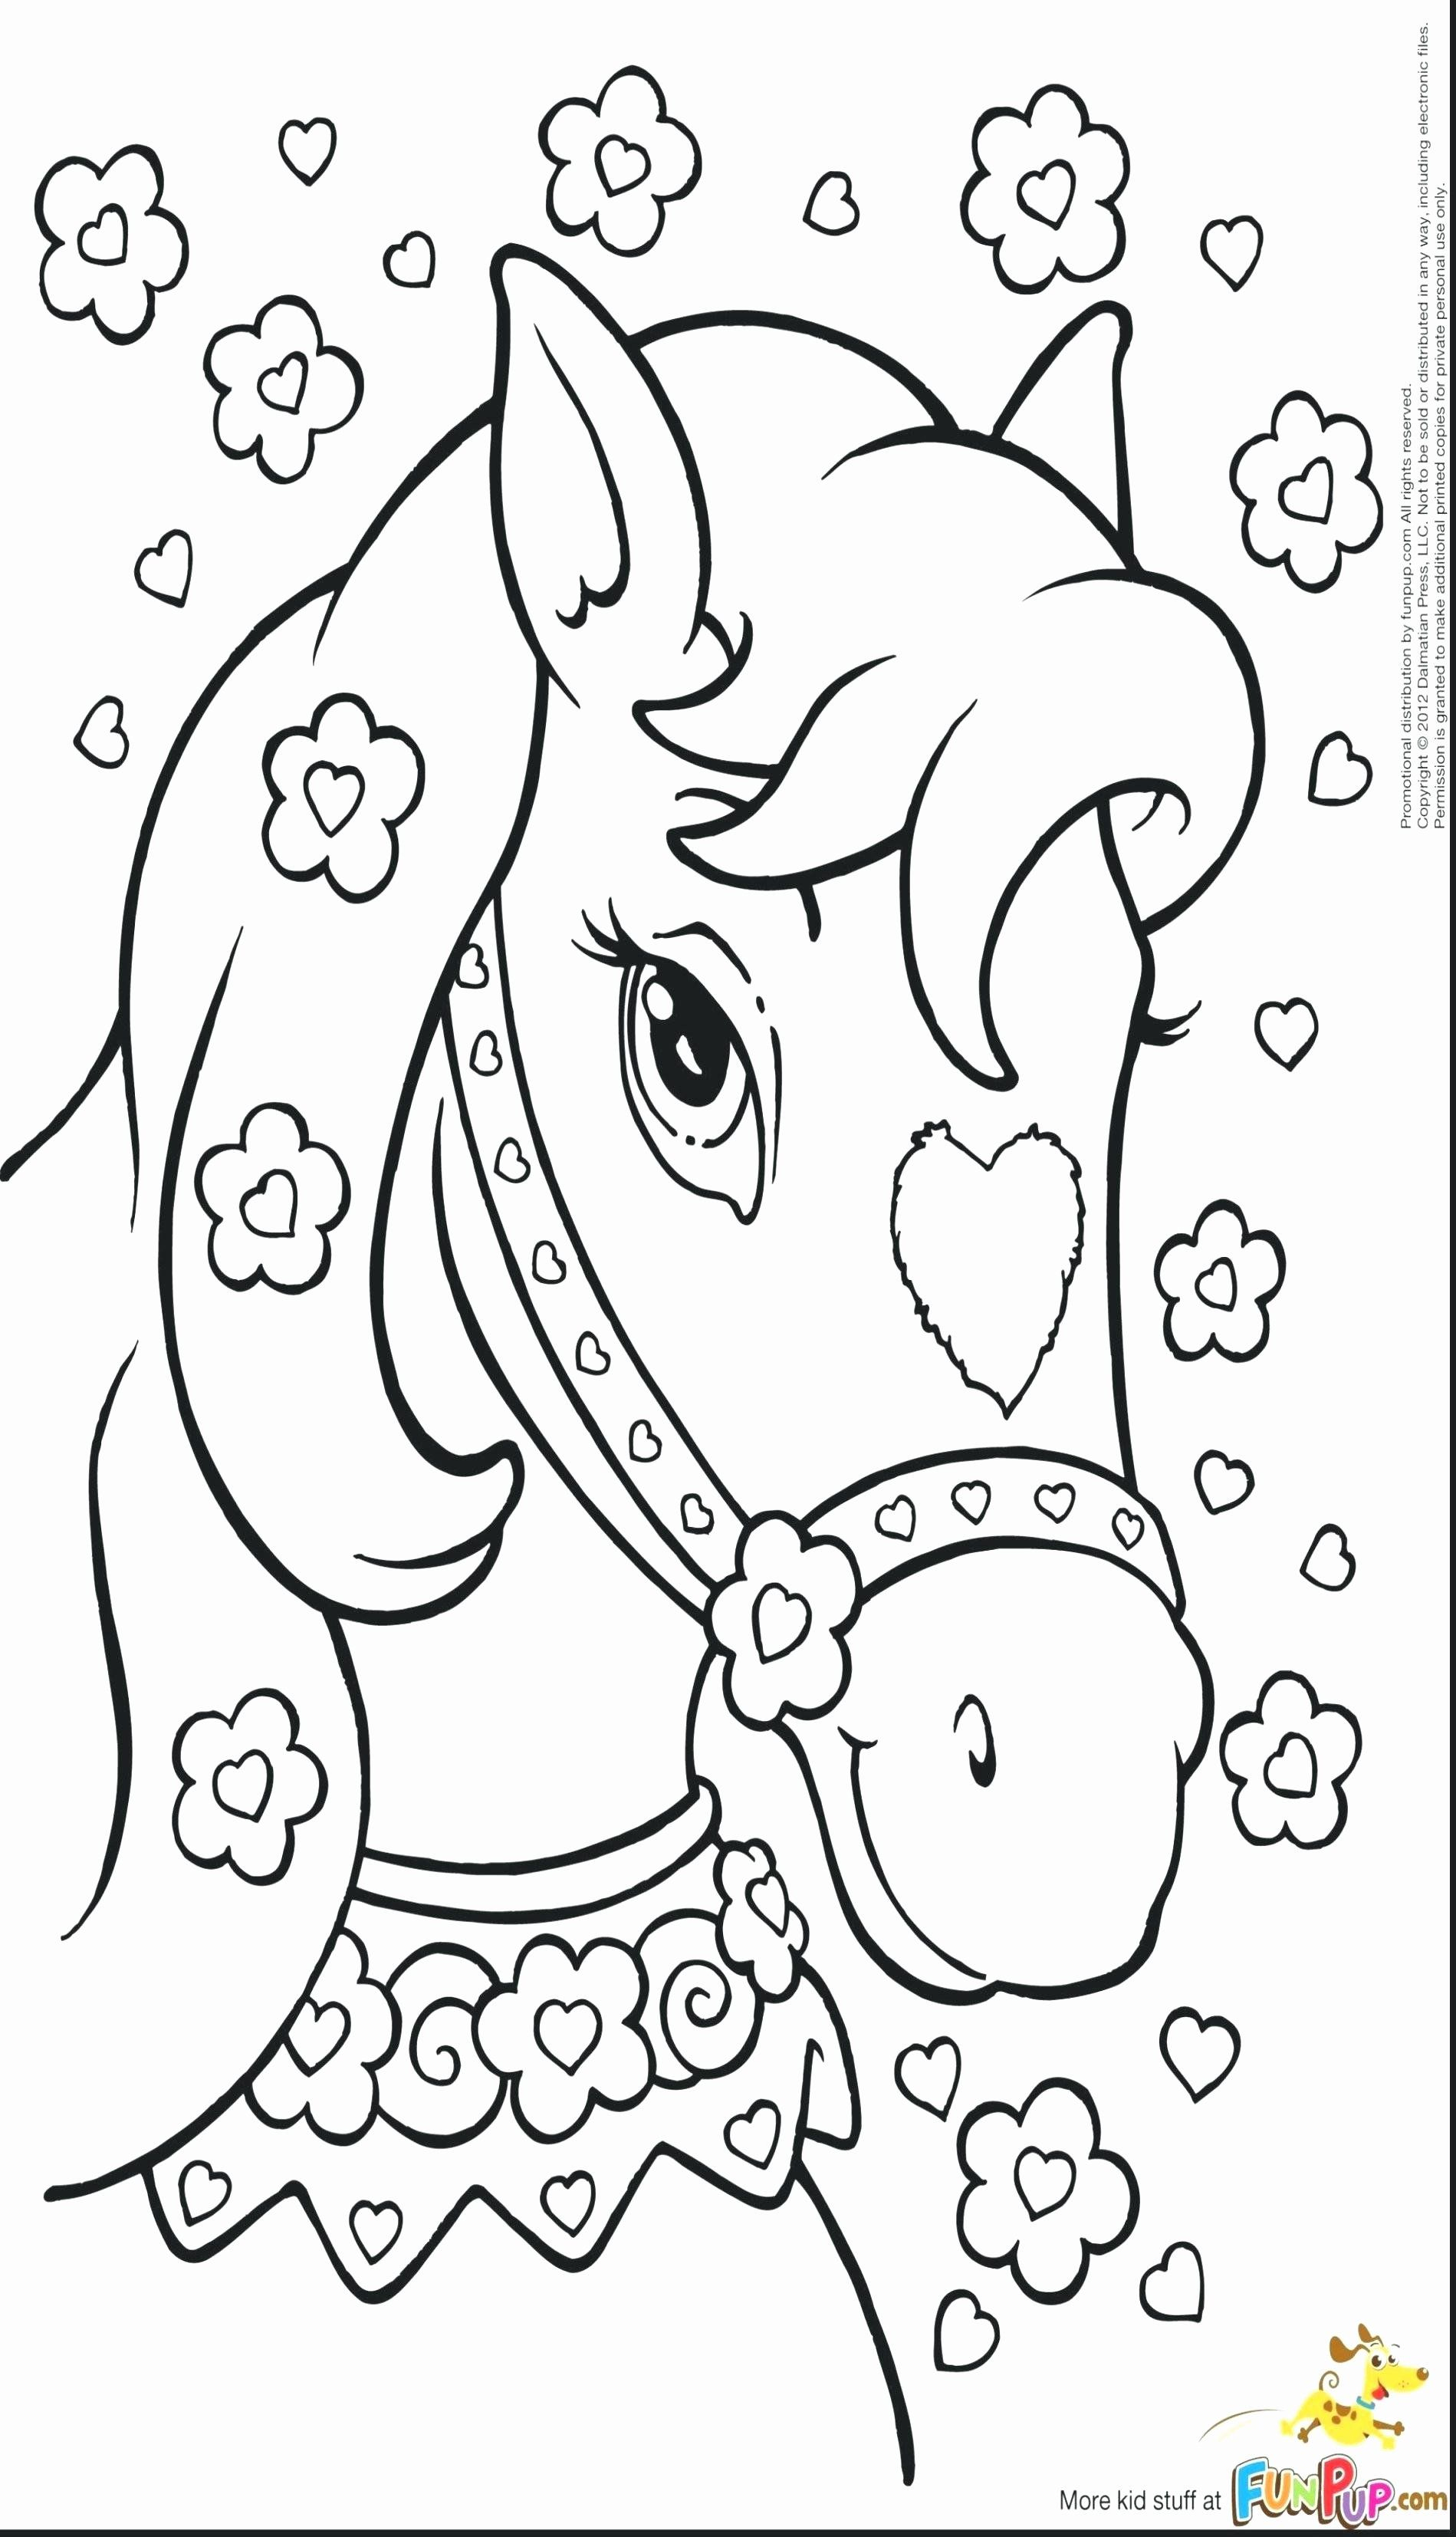 Coloring Flowers Pdf Unique Princess Coloring Pages To Print For Free Ann Unicorn Coloring Pages Kids Printable Coloring Pages Disney Princess Coloring Pages